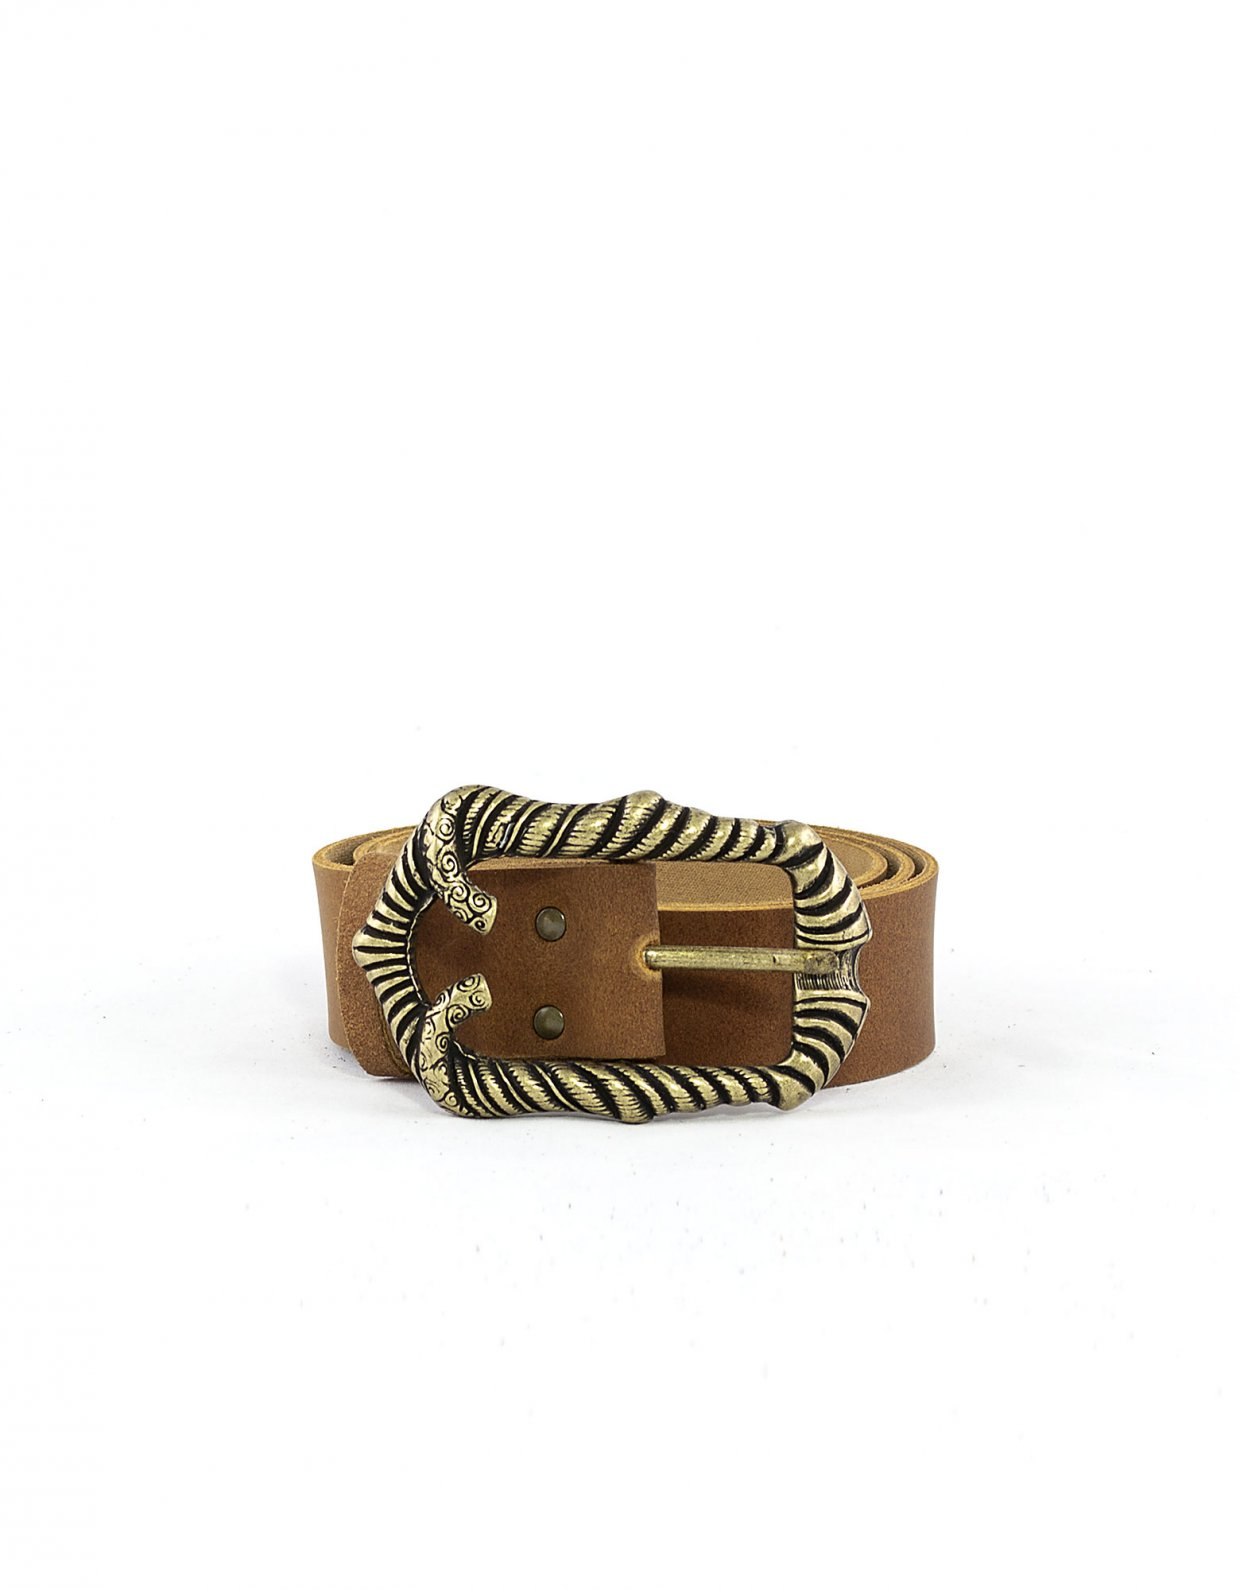 Peace & Chaos Bodhi belt tanned